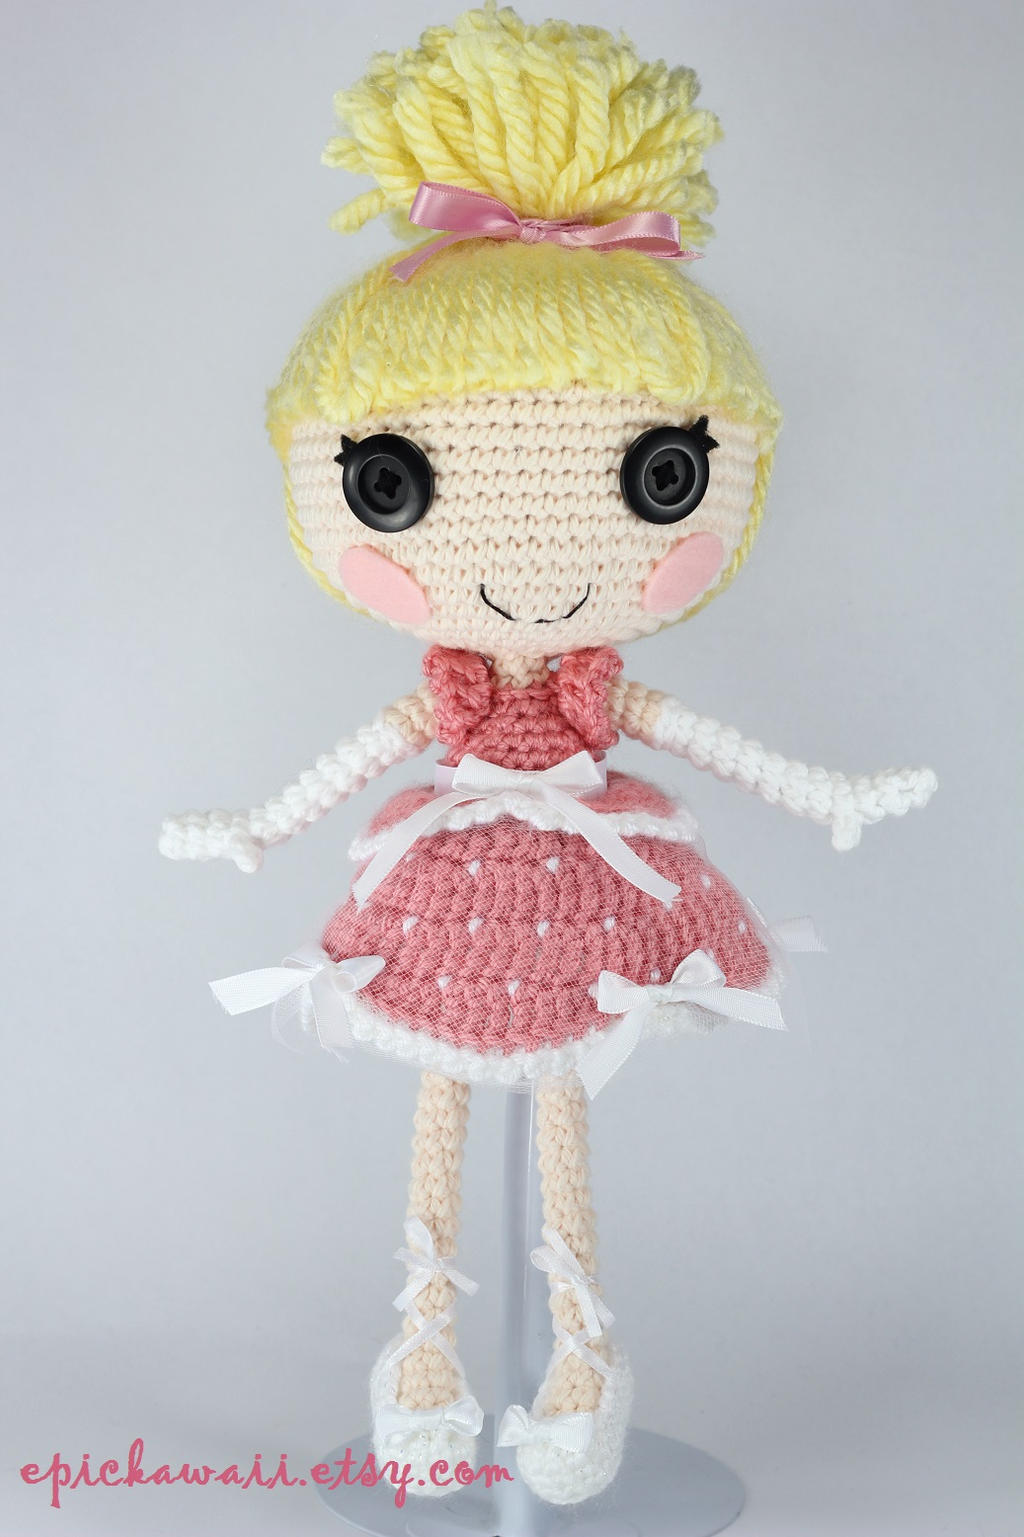 LALALOOPSY Cinder Slippers Crochet Amigurumi Doll by ...